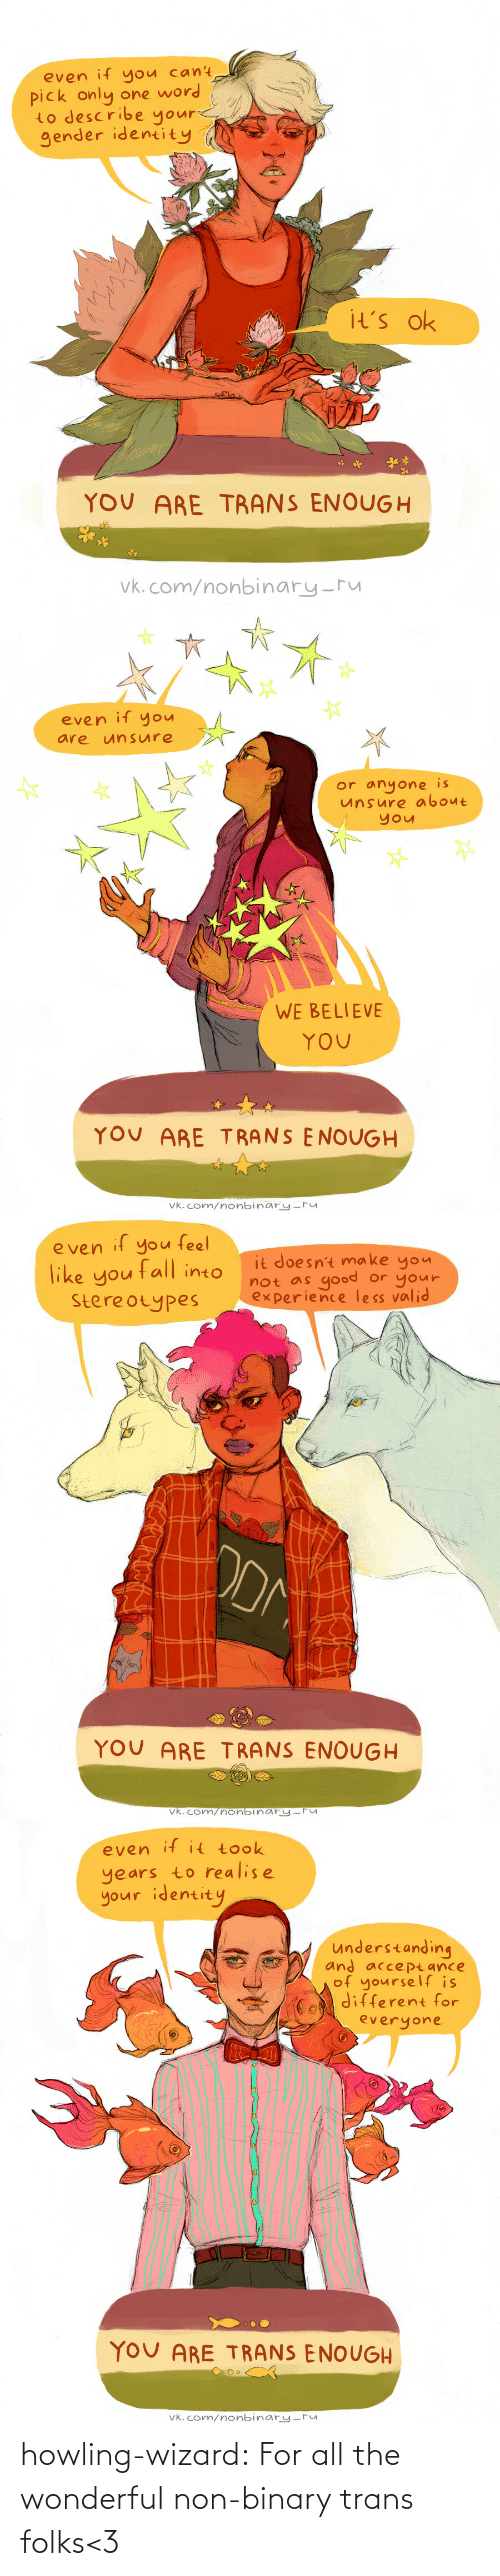 howling: howling-wizard: For all the wonderful non-binary trans folks<3